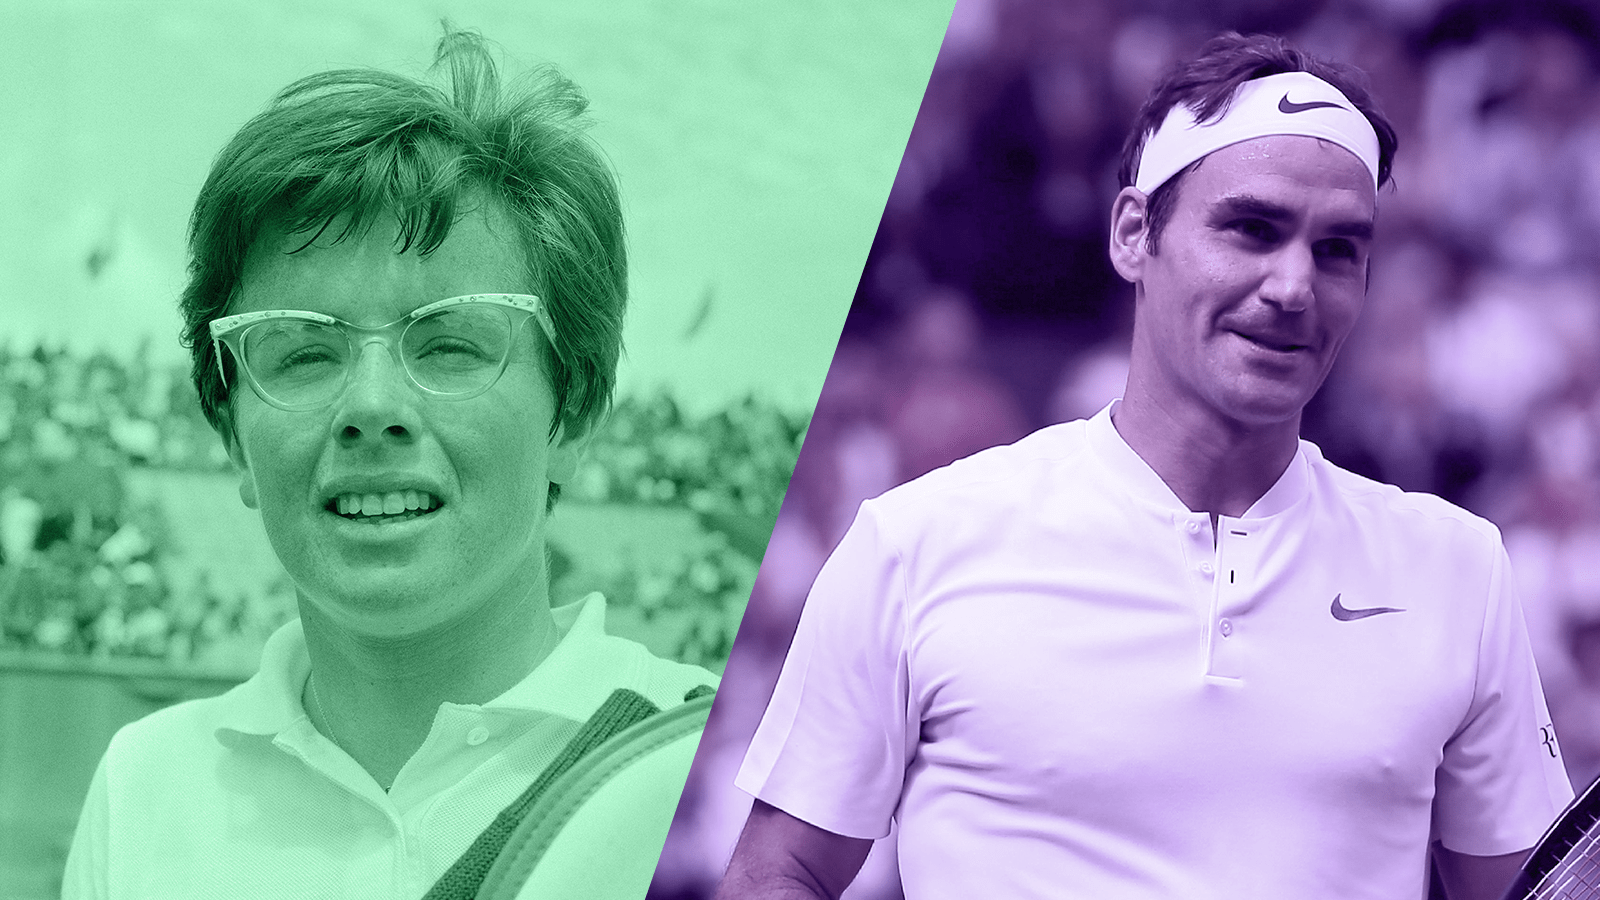 Wimbledon 2018: How the Championships have changed since 1968